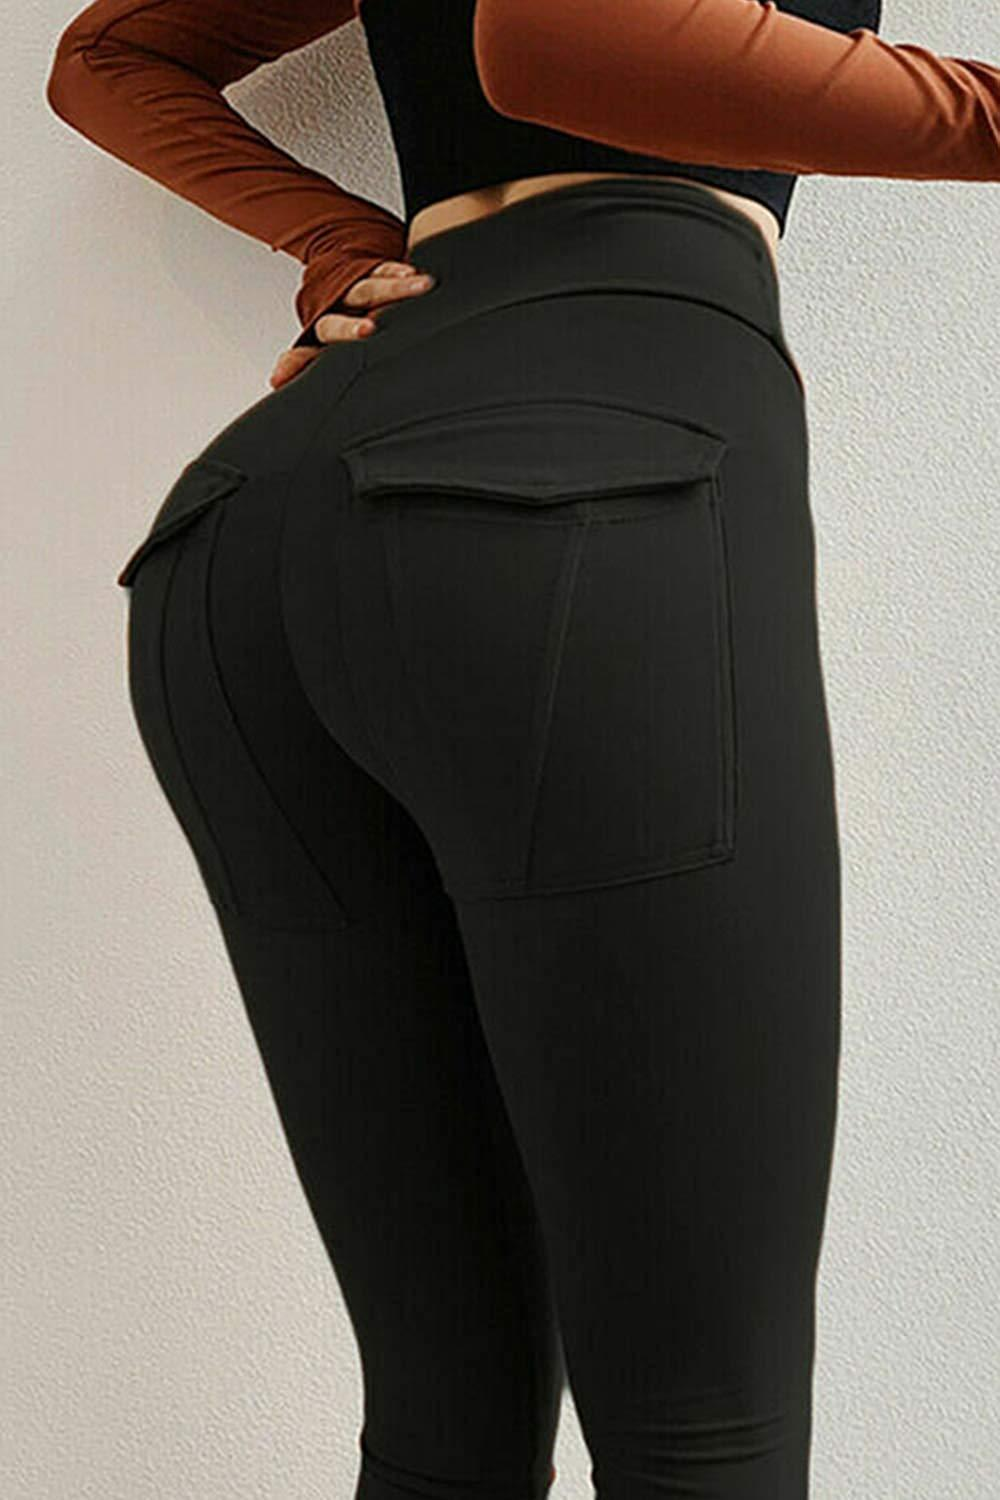 Women's Out Pockets Tight Yoga Pants-JustFittoo